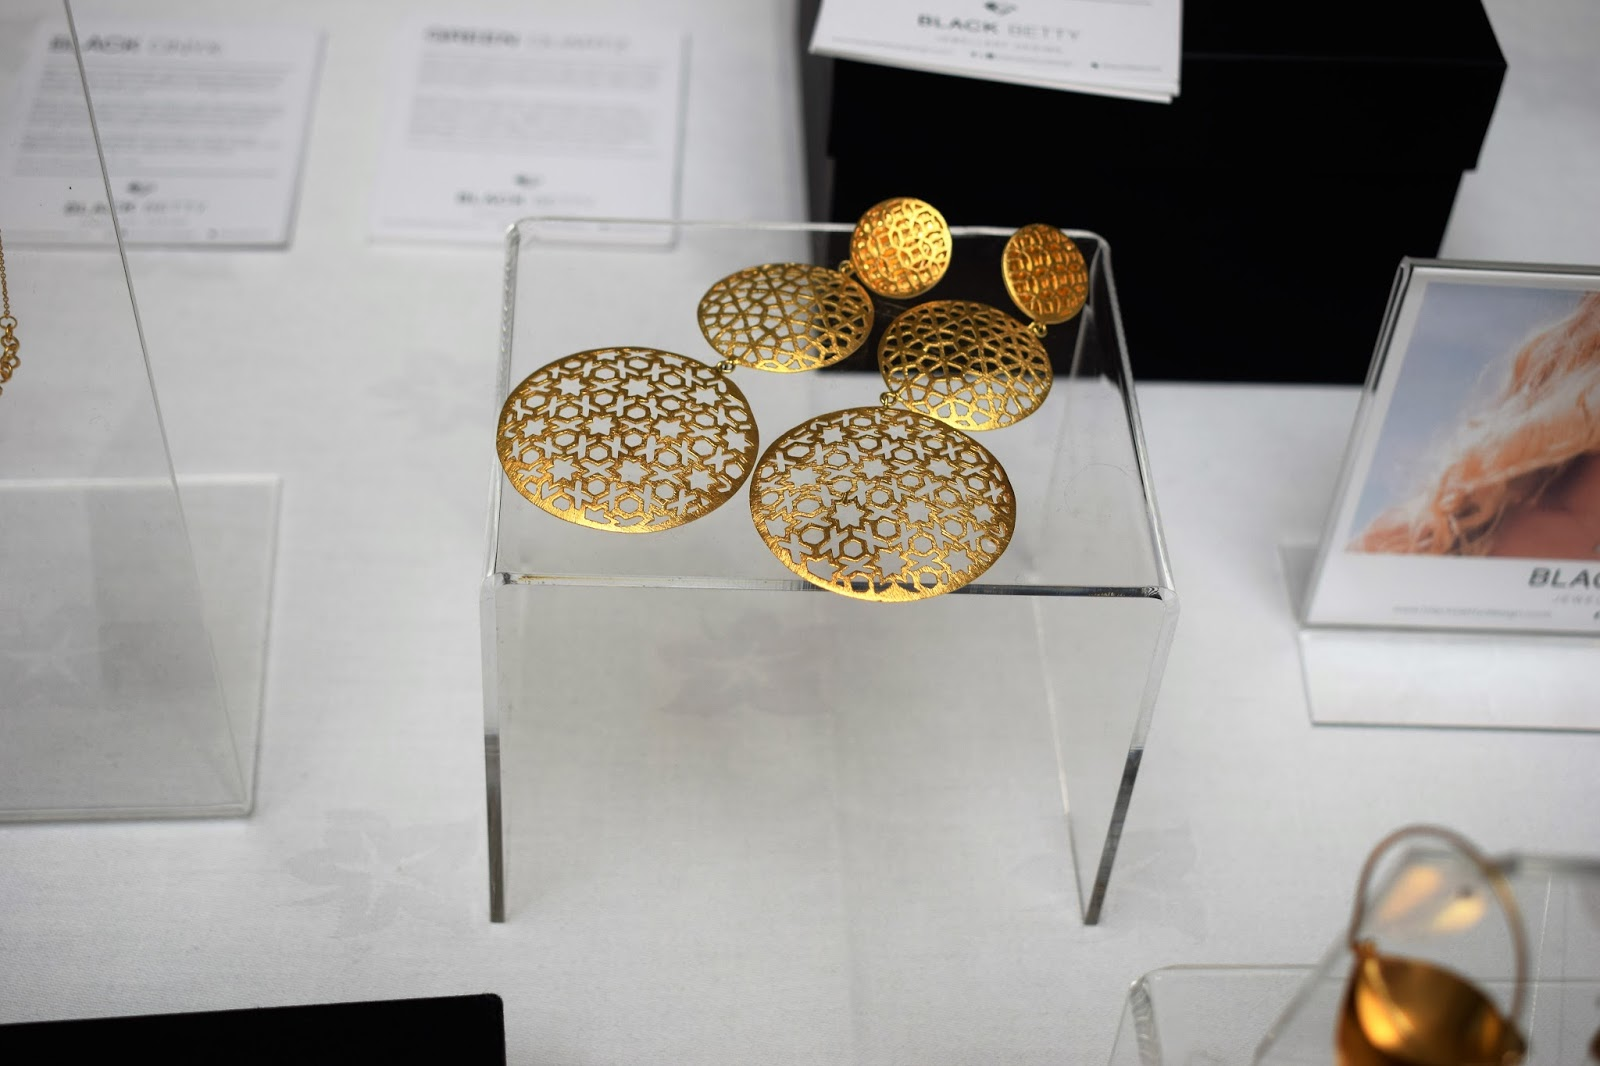 Edinburgh International Fashion Festival, foreign exchange fsahion market, South African jeweller blag gold, gold disk earrings, ethical fashion jewellery